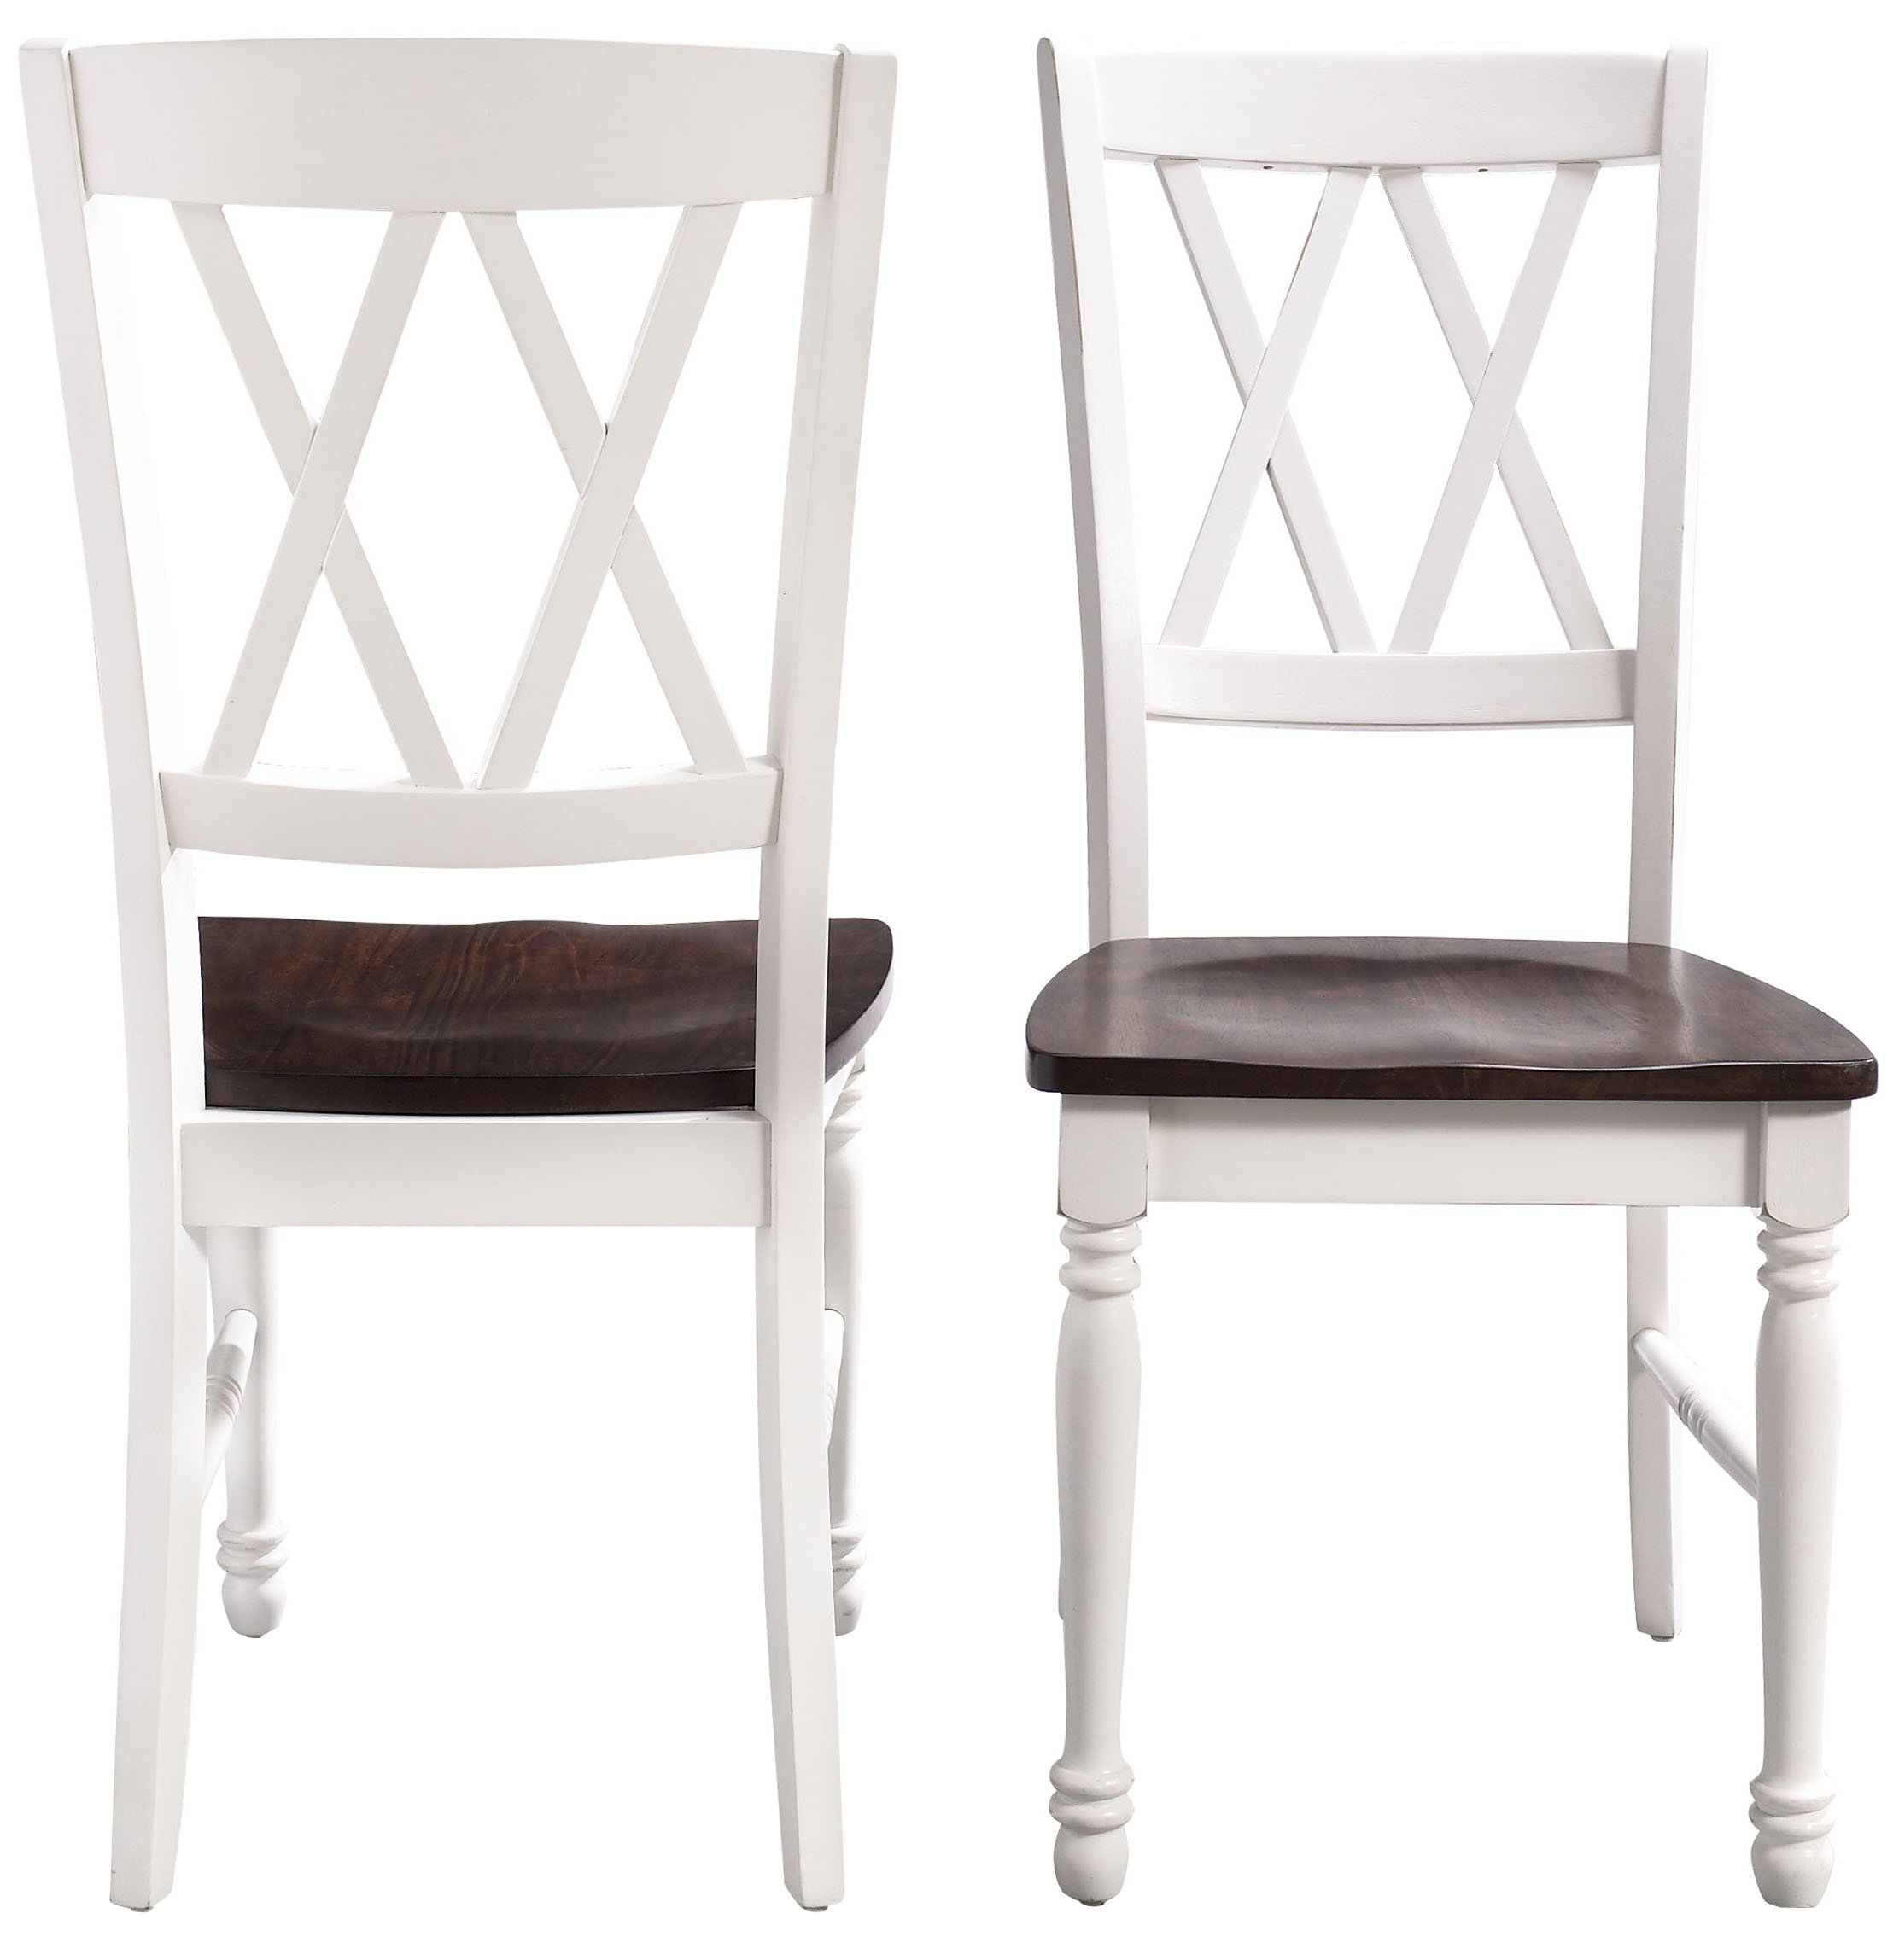 Crosley Furniture CF501018-WH Shelby Dining Chairs (Set of 2), White by Crosley Furniture (Image #7)